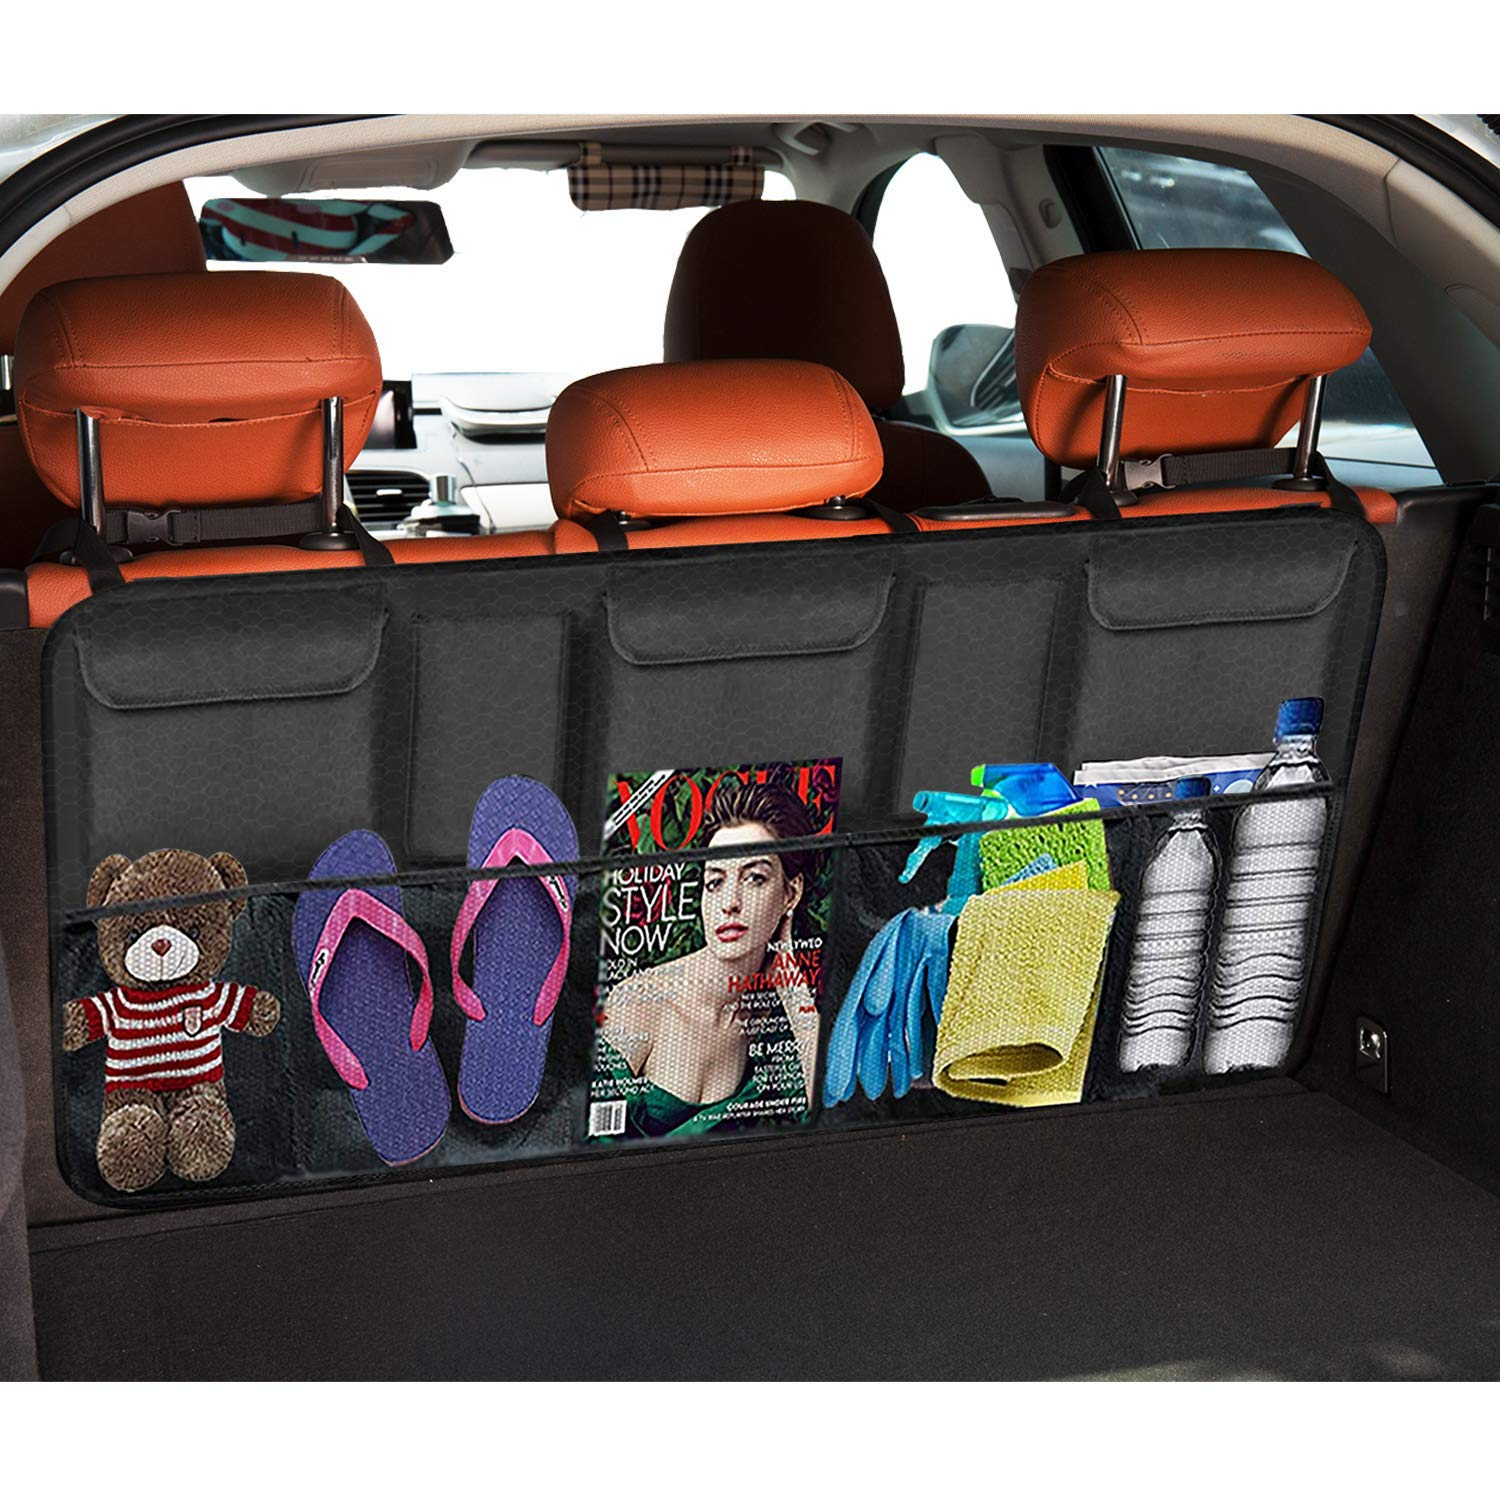 SUV Car Backseat Trunk Organizer Van Organizers Back Seat Mesh Pockets 42 x 22-inch Auto Back Seat Trunk Storage Organizers for Truck